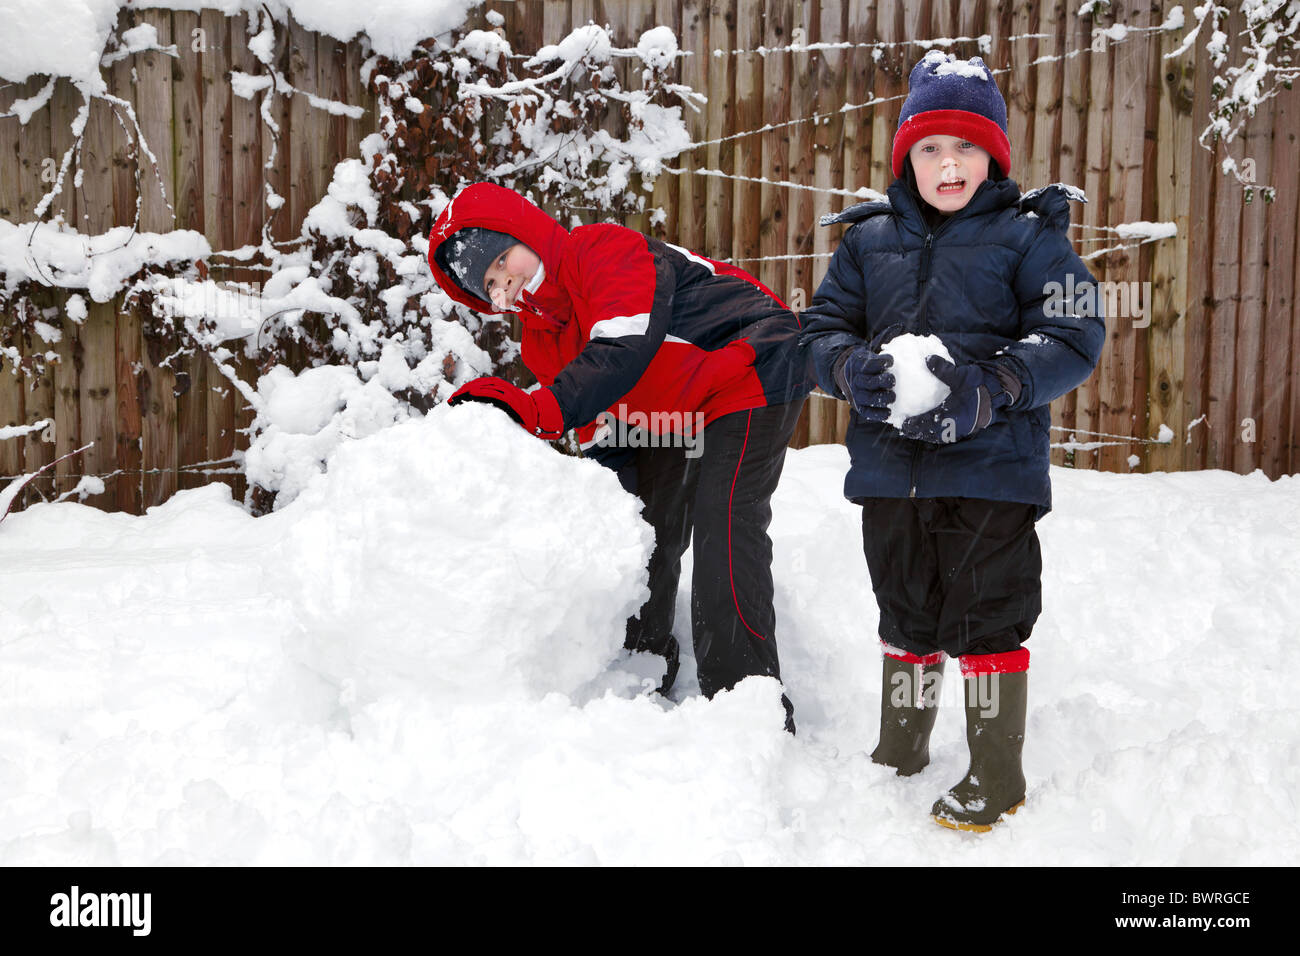 Two boys playing in the snow, one with a snowball and the other starting to build a snowman. - Stock Image